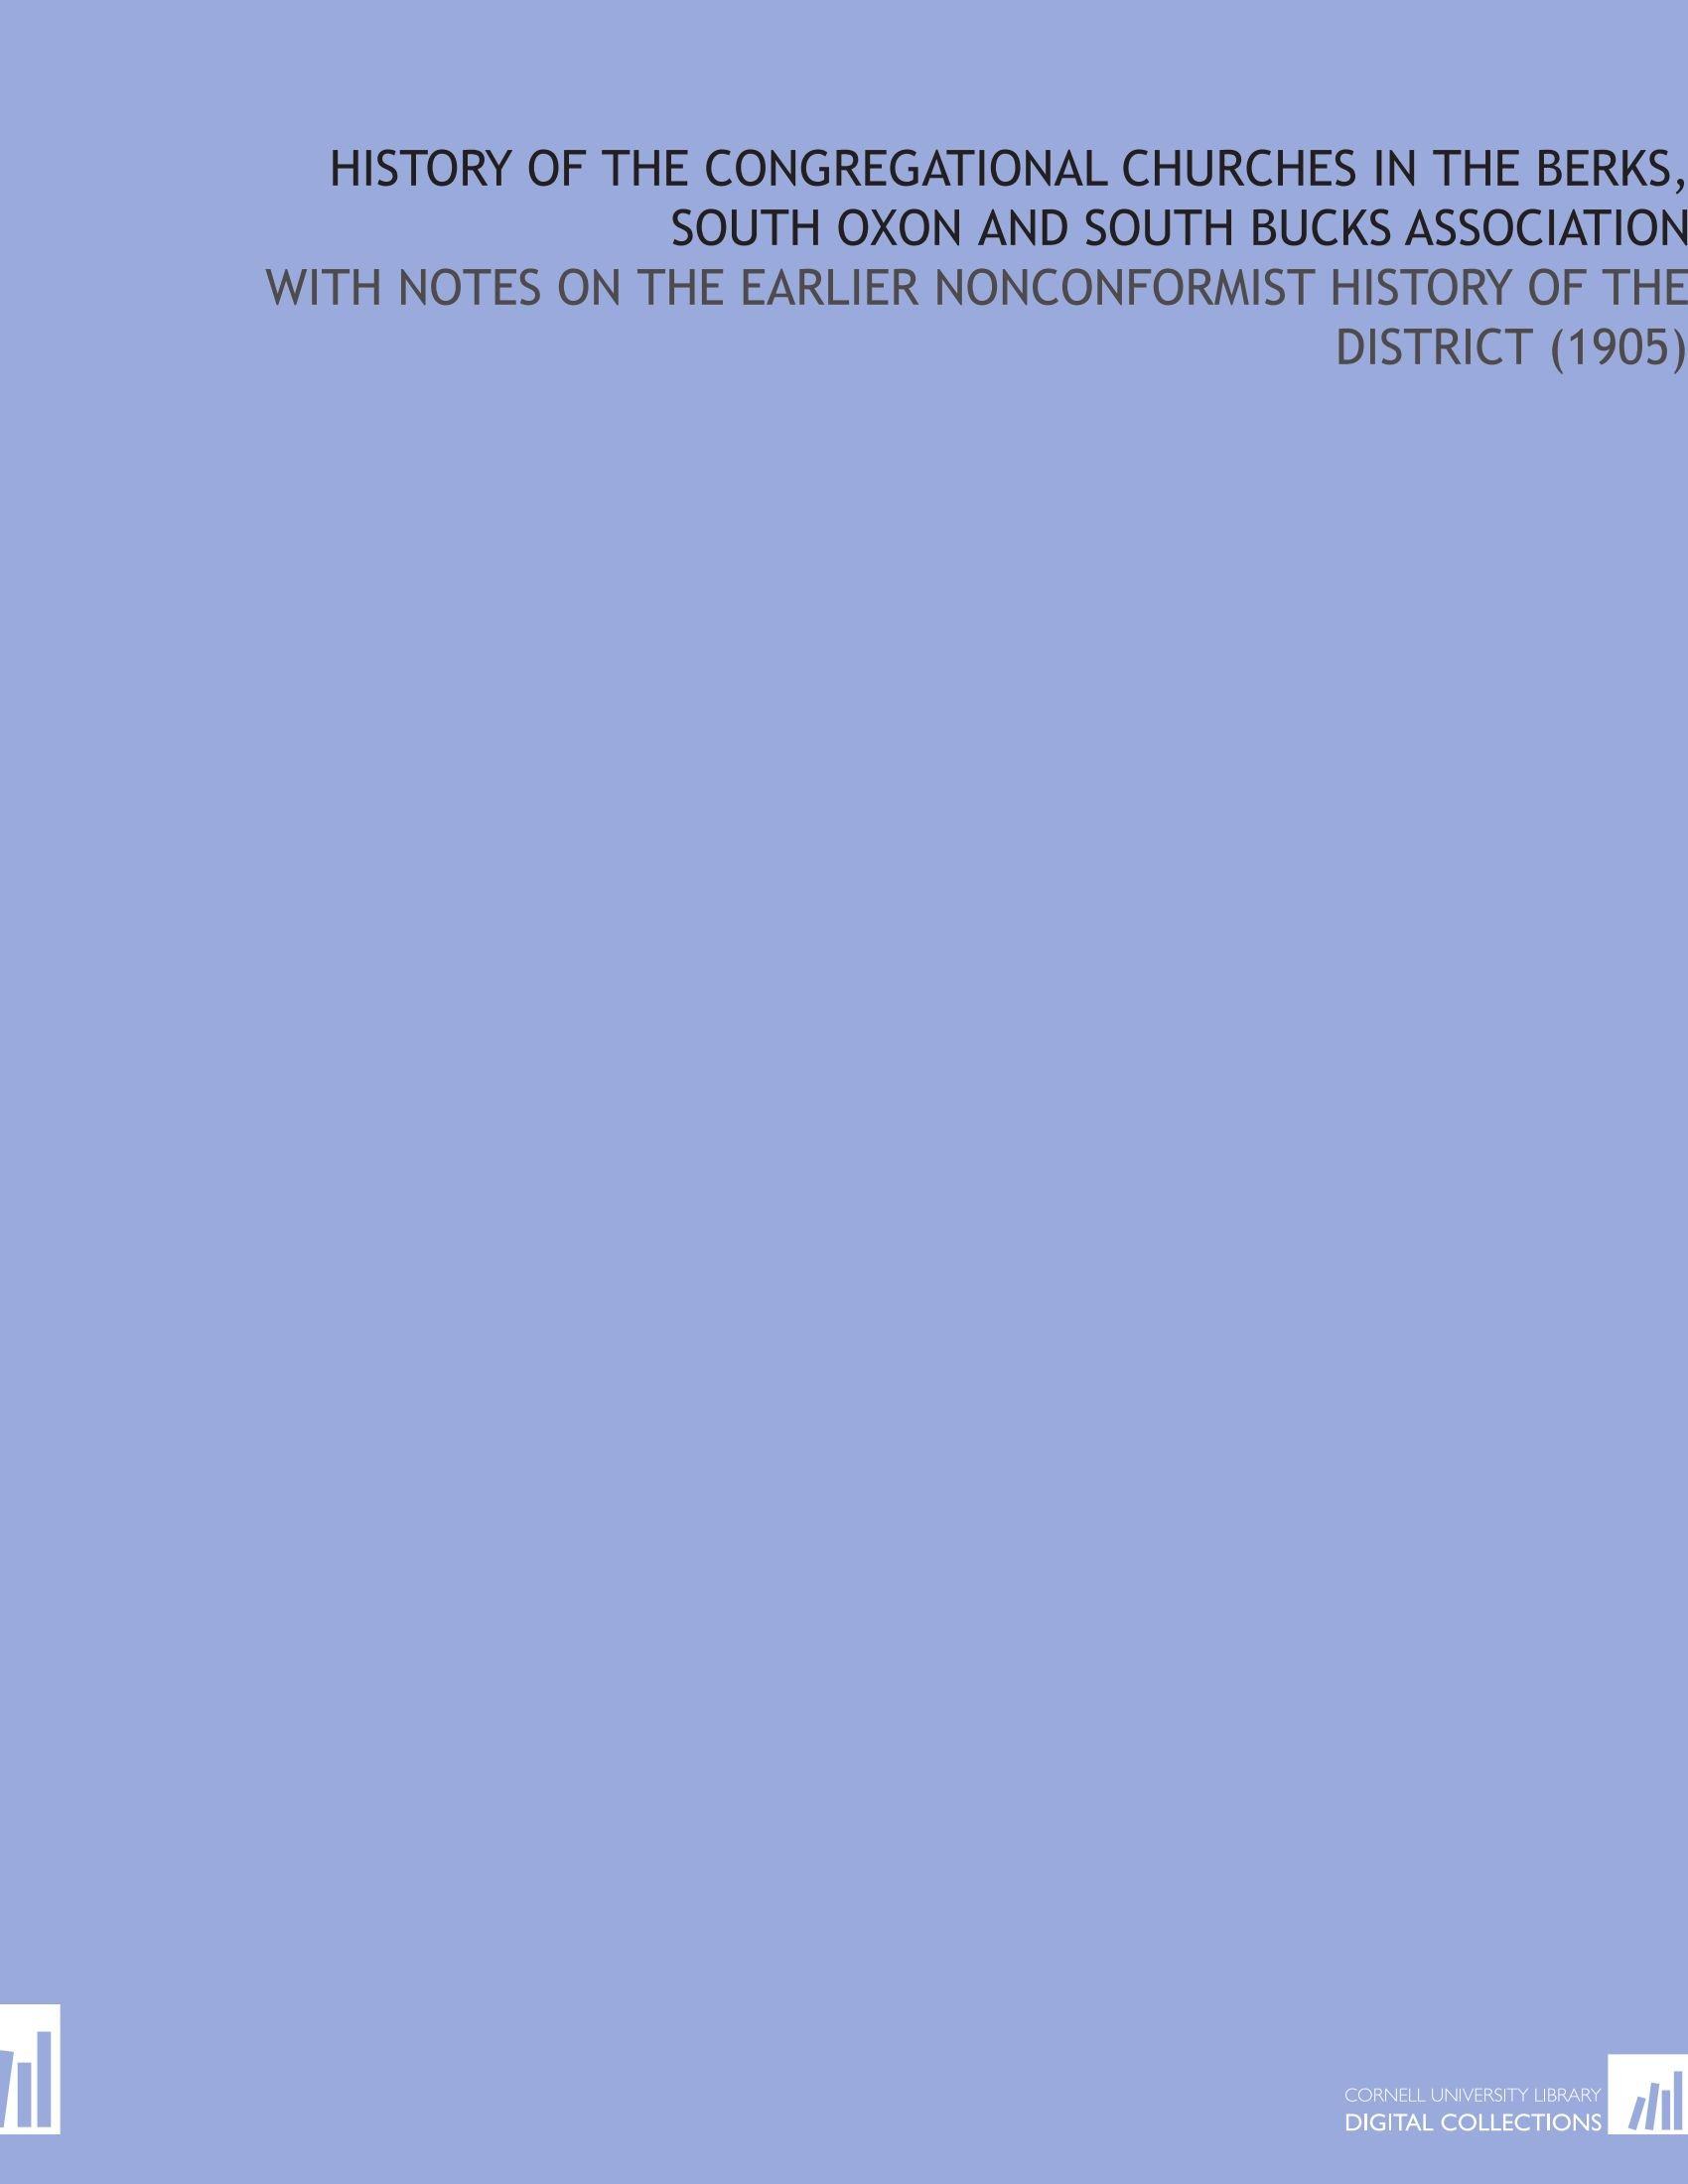 Download History of the Congregational Churches in the Berks, South Oxon and South Bucks Association: With Notes on the Earlier Nonconformist History of the District (1905) pdf